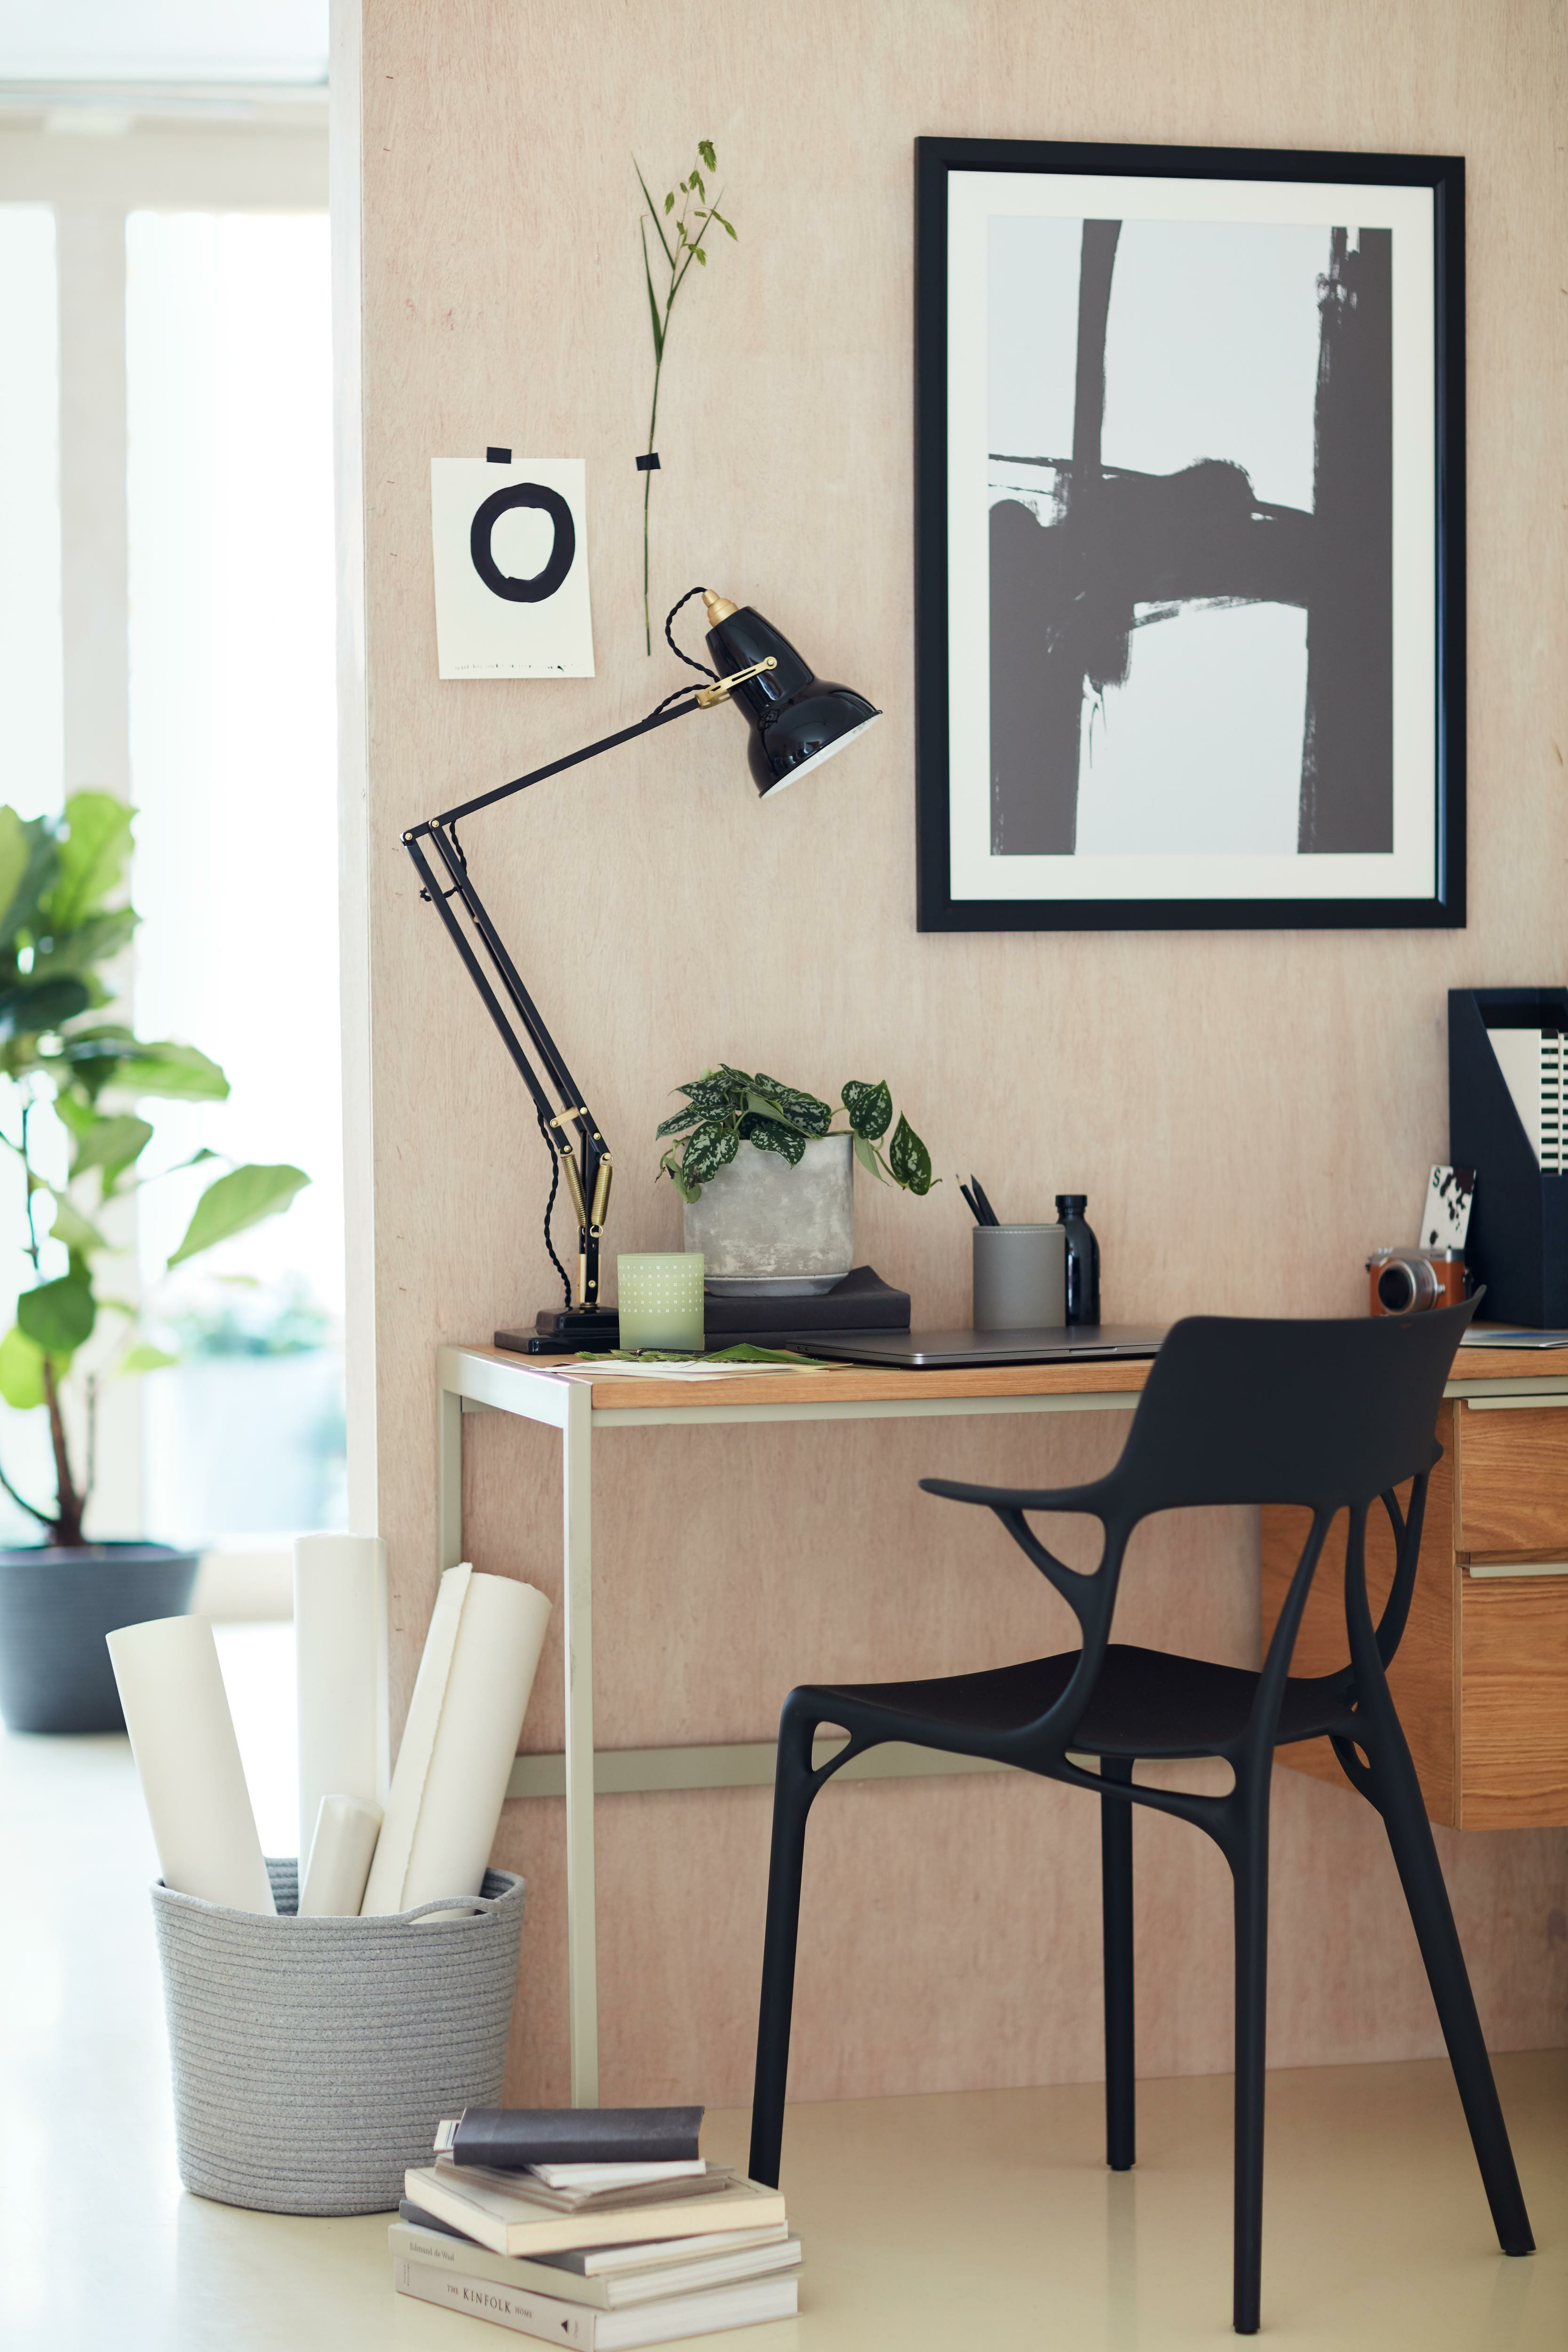 7 things every business website needs: John Lewis image of home office space